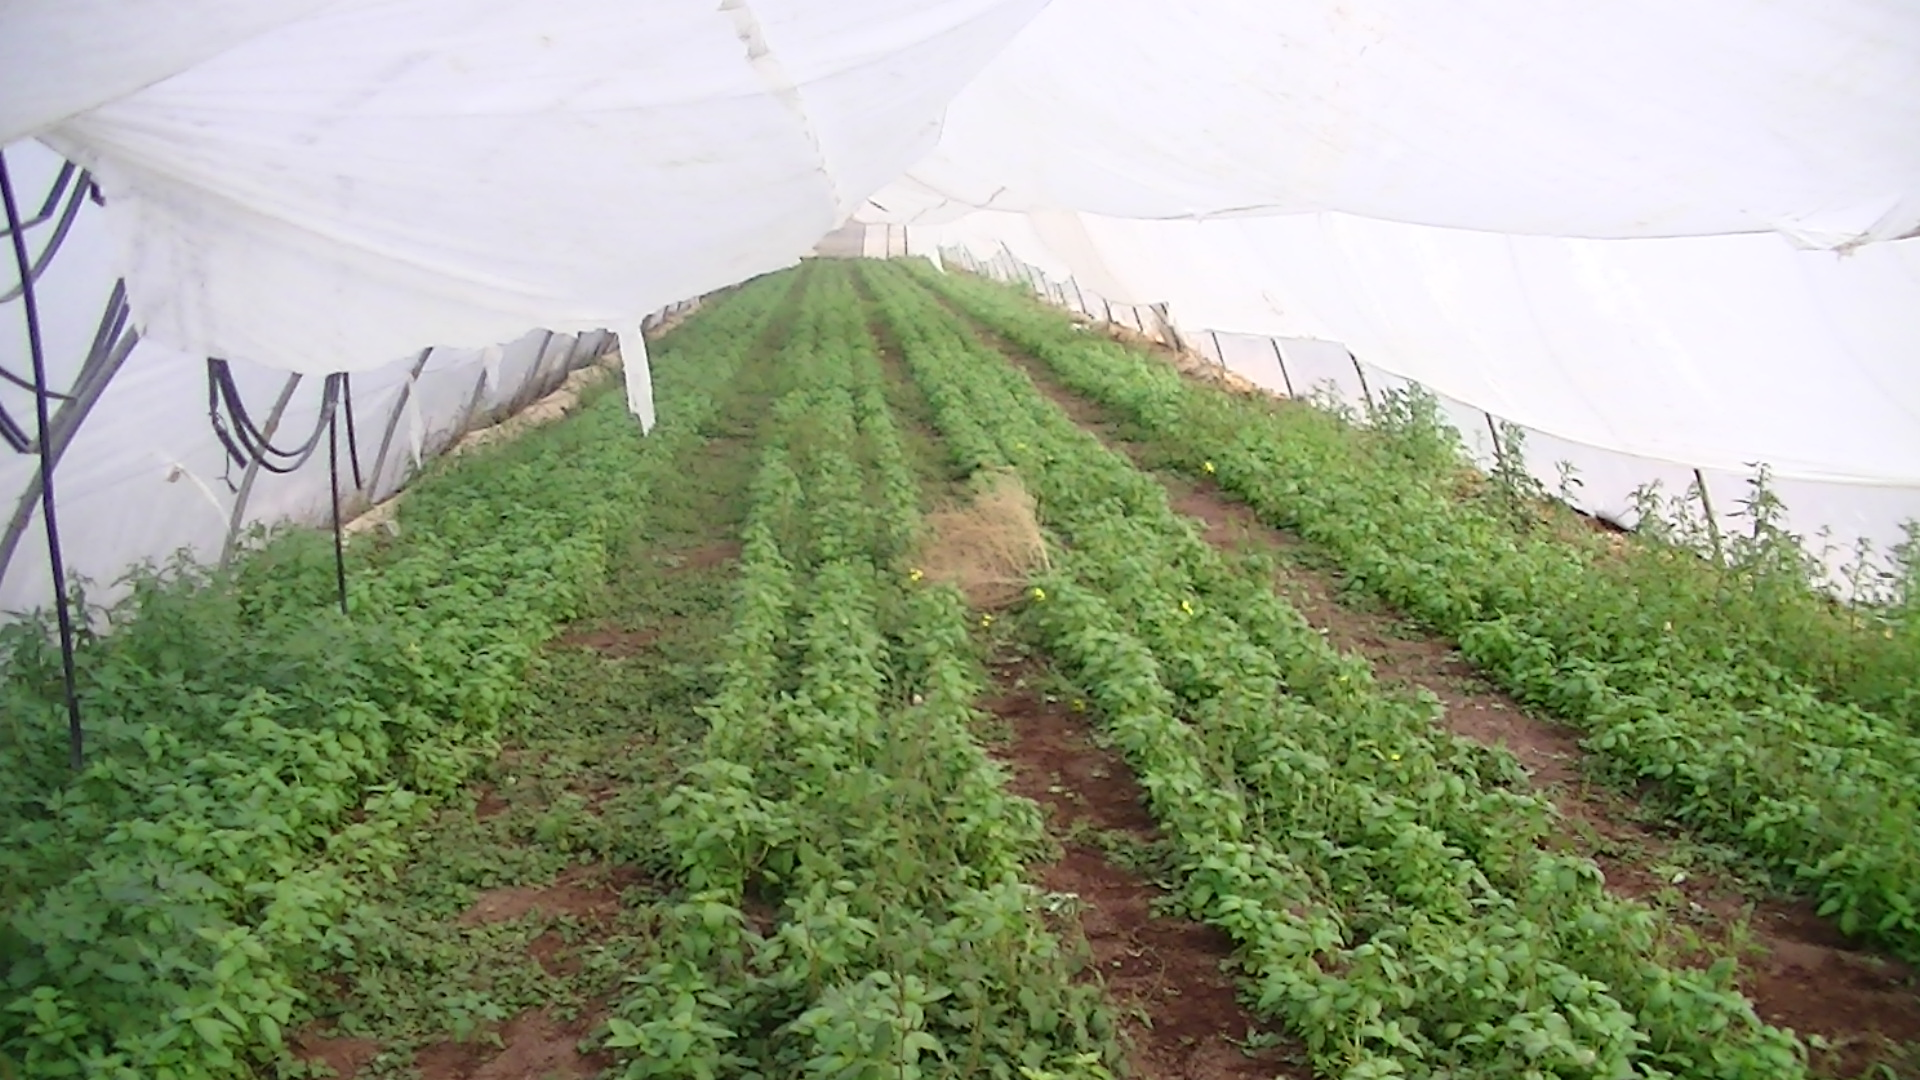 Greenhouses in the settlement of Na'ama, picture taken by Corporate Watch in January 2013